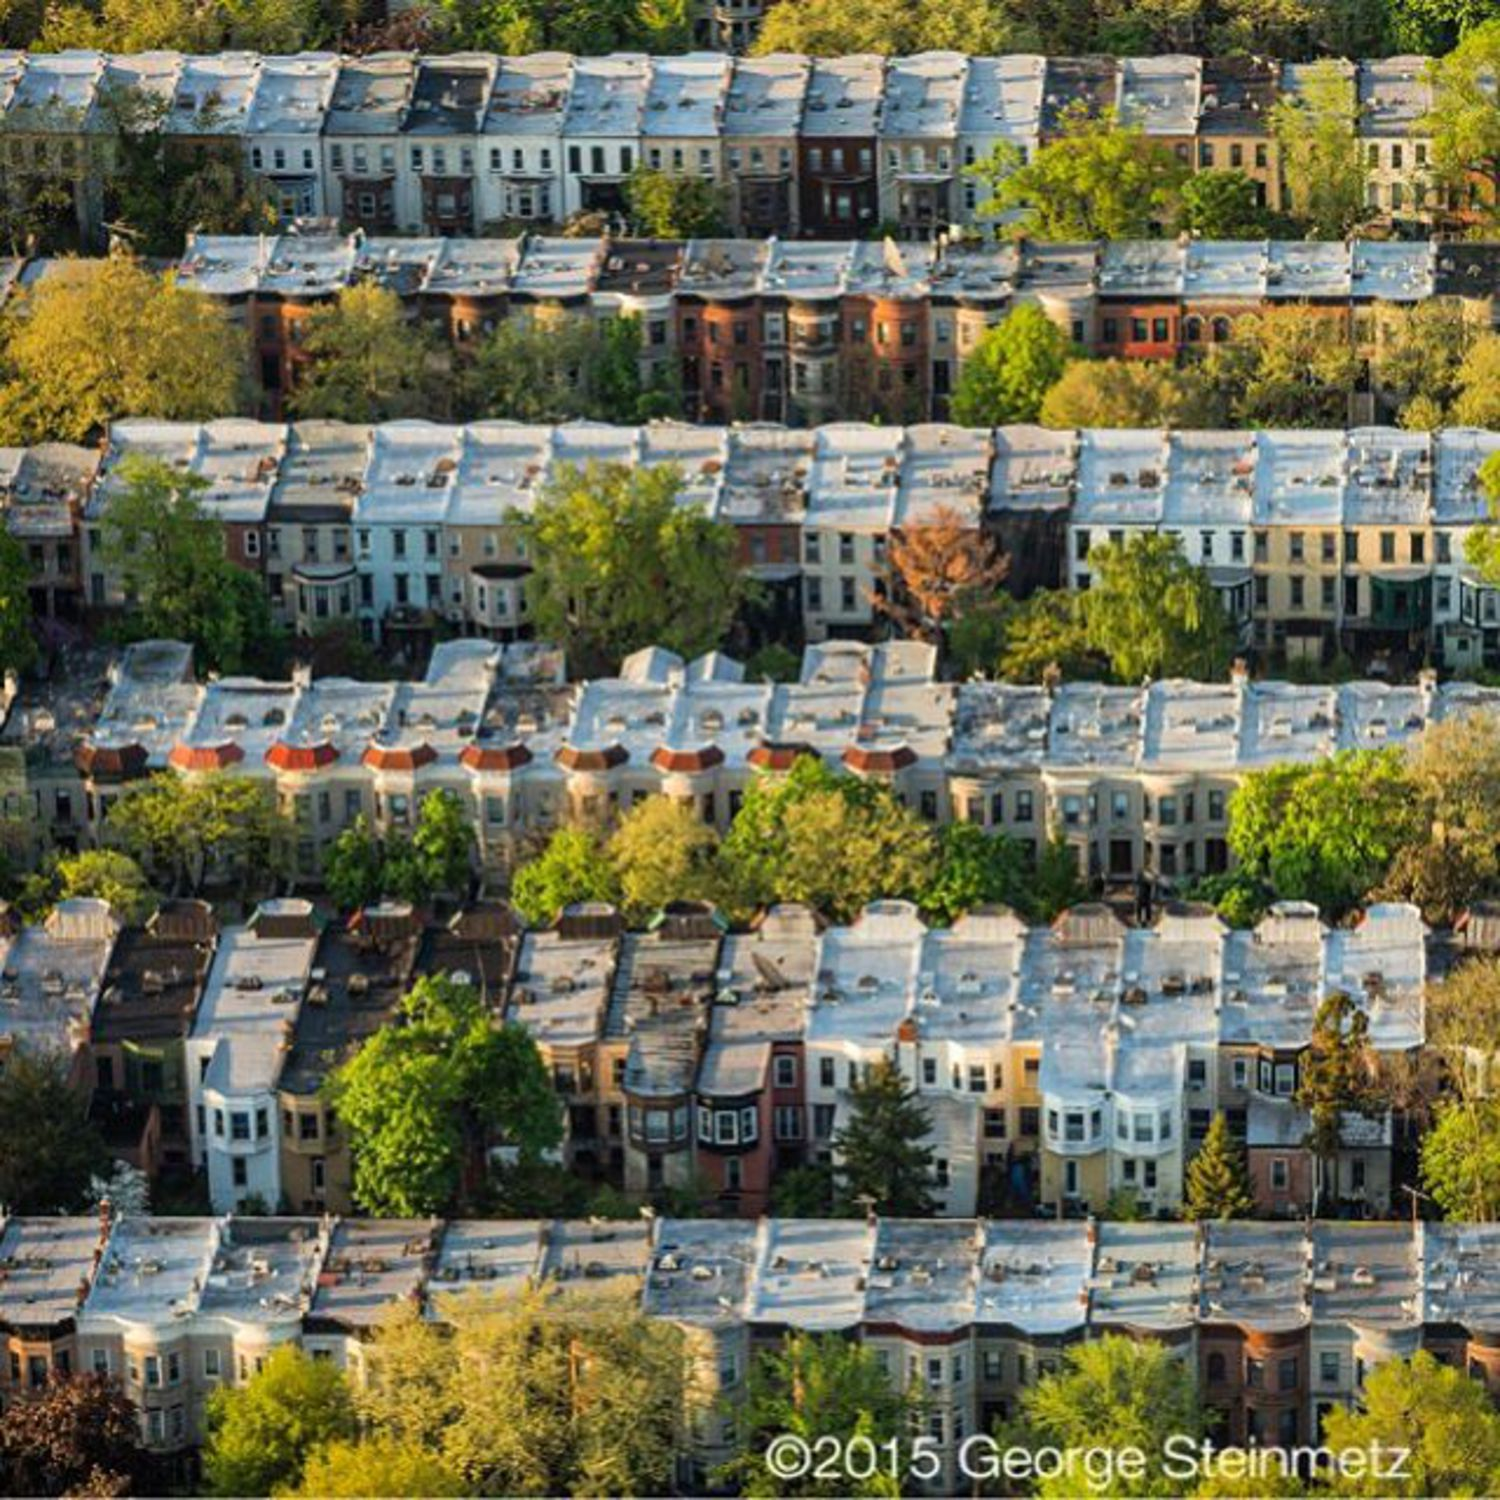 Photograph by George Steinmetz @geosteinmetz / @thephotosociety Brooklyn's Prospect-Lefferts Gardens was originally a Dutch farmstead in northern Flatbush Village. James Lefferts divided a portion of his property into 600 building lots in 1893, at a time of rapid urbanization, when Brooklyn was the third largest city in the U.S. By the time most of the houses were built, it had become part of the City of Greater New York (1896) and the subway had reached this section of Brooklyn (1905). #Lefferts insisted on deed restrictions that required the new houses to be brick or stone single-family residences, at least two stories with a cellar, selling for more than five thousand dollars.